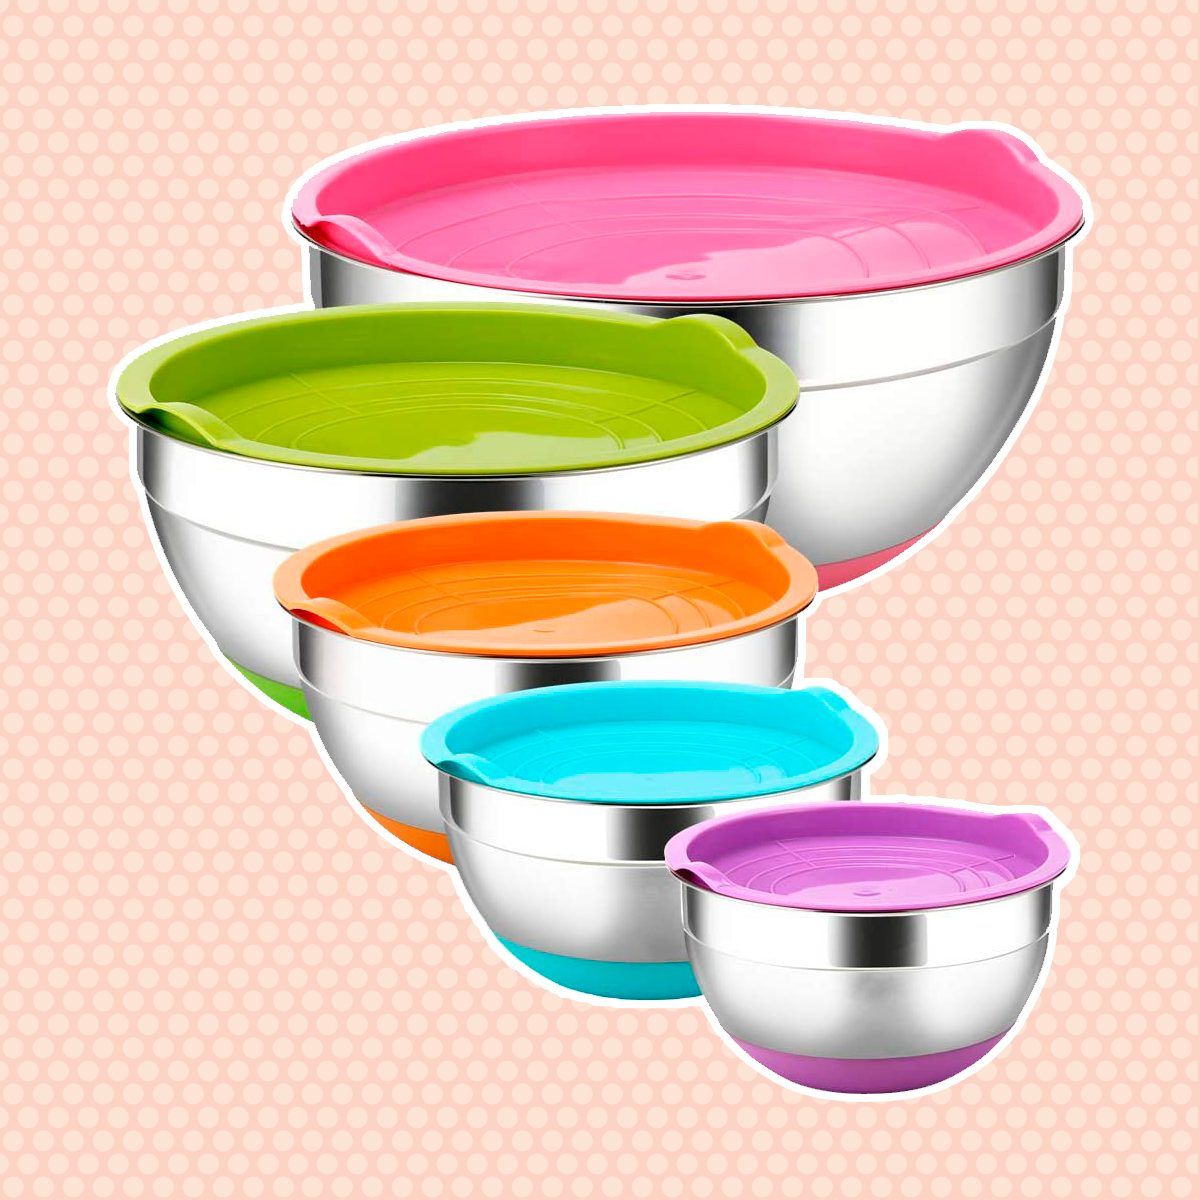 Stainless Steel Mixing Bowls with Airtight Lids by REGILLER